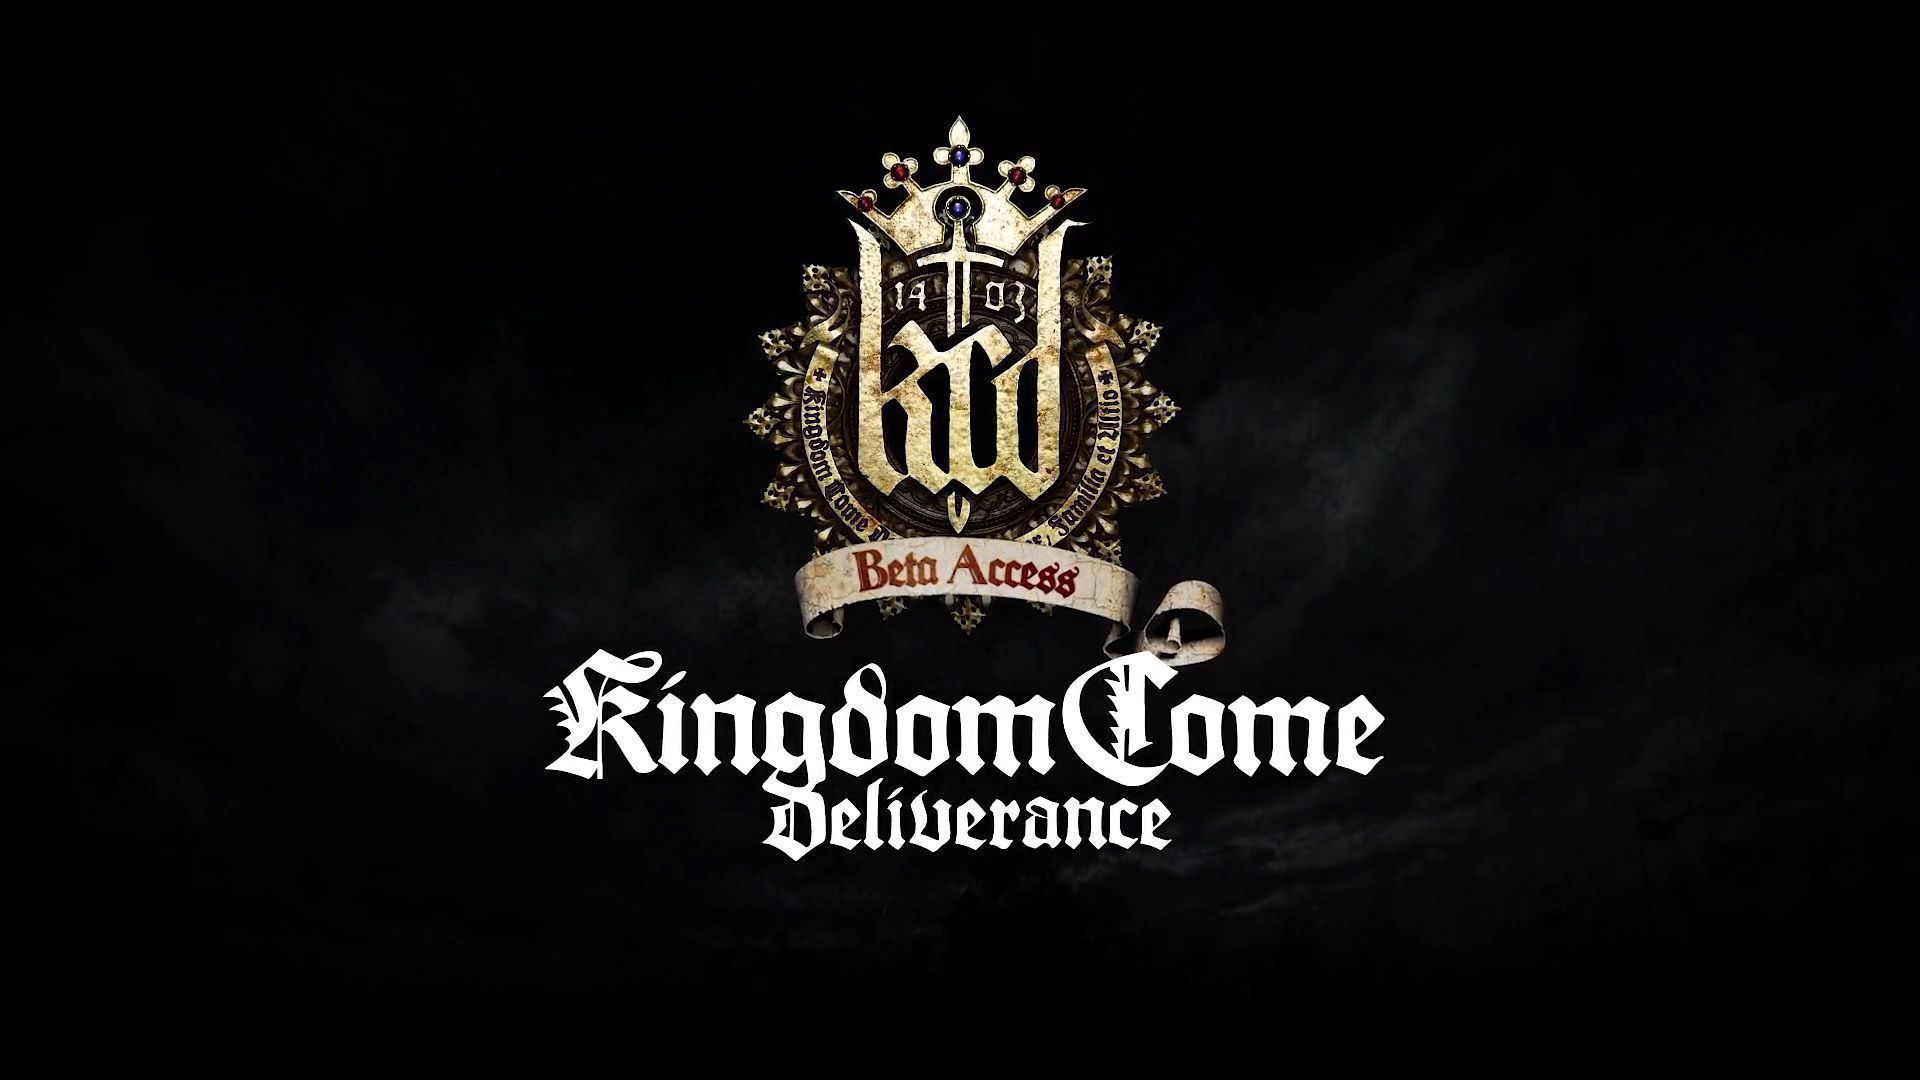 Kingdom Come Deliverance Wallpapers Backgrounds 1920x1080